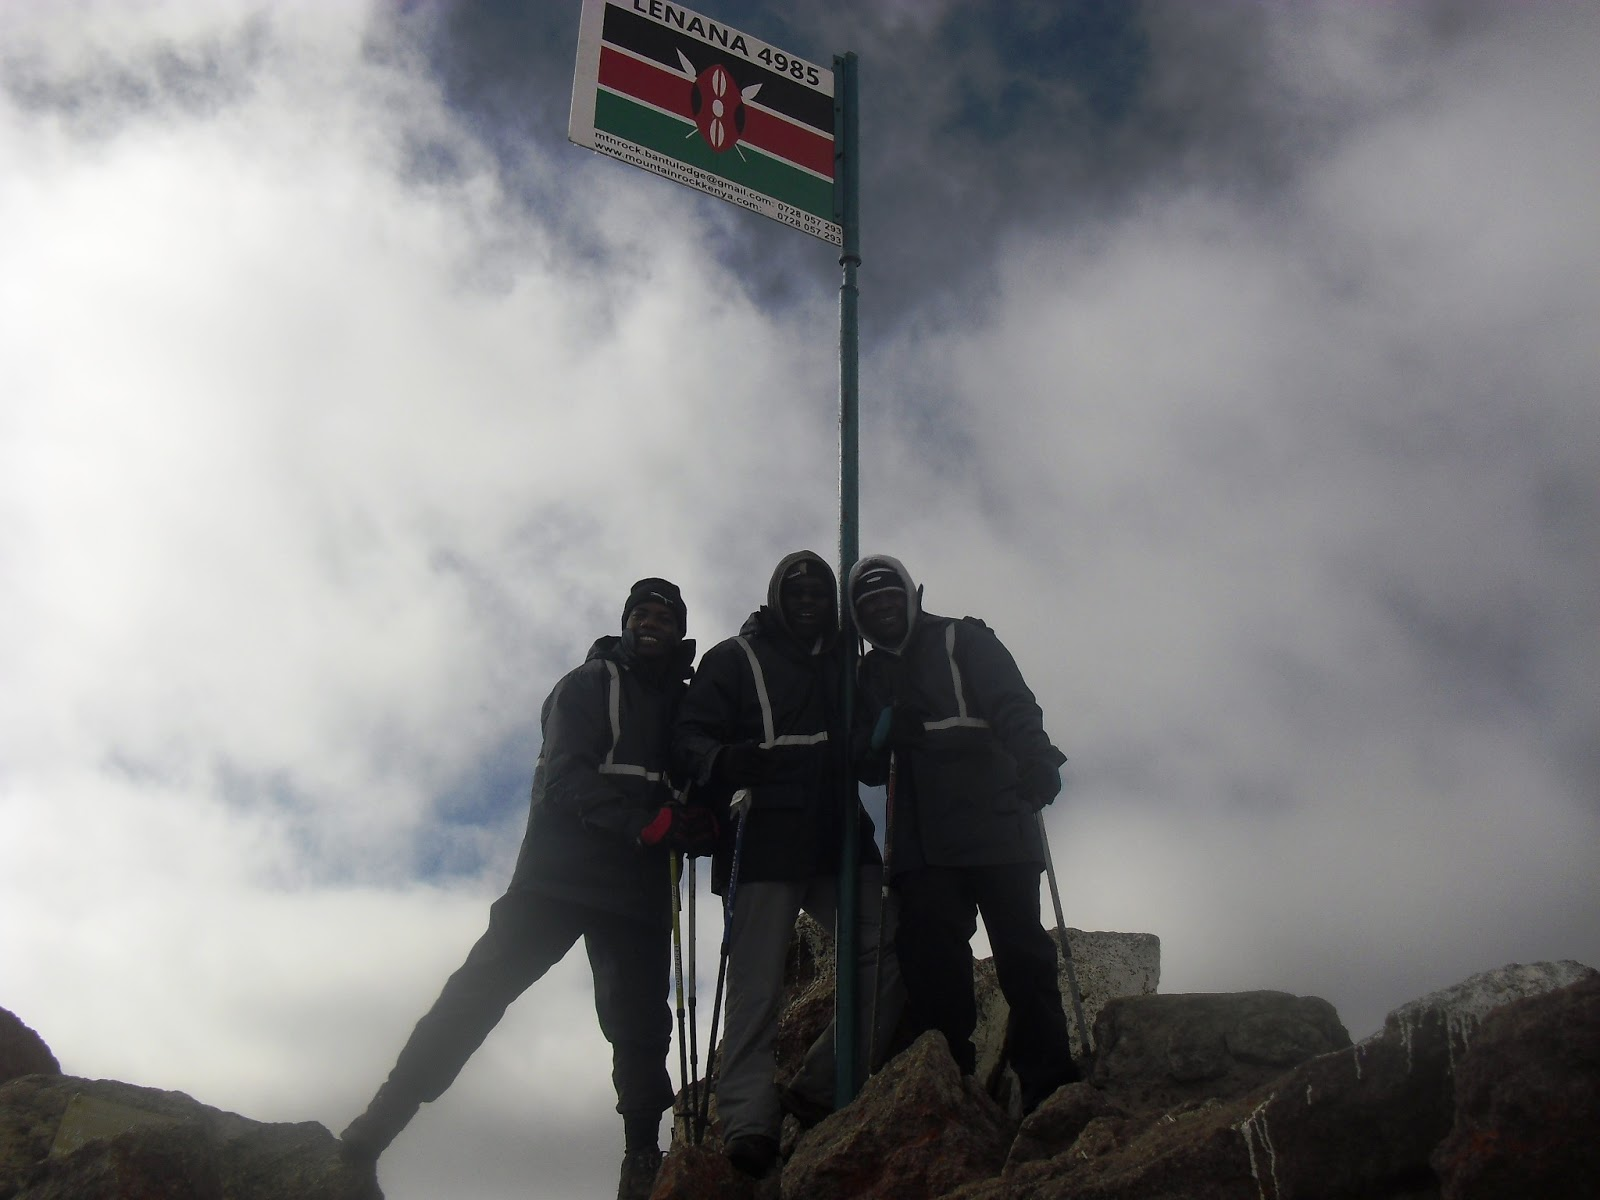 Ascent of Mount Kenya | For the Greater Glory of God